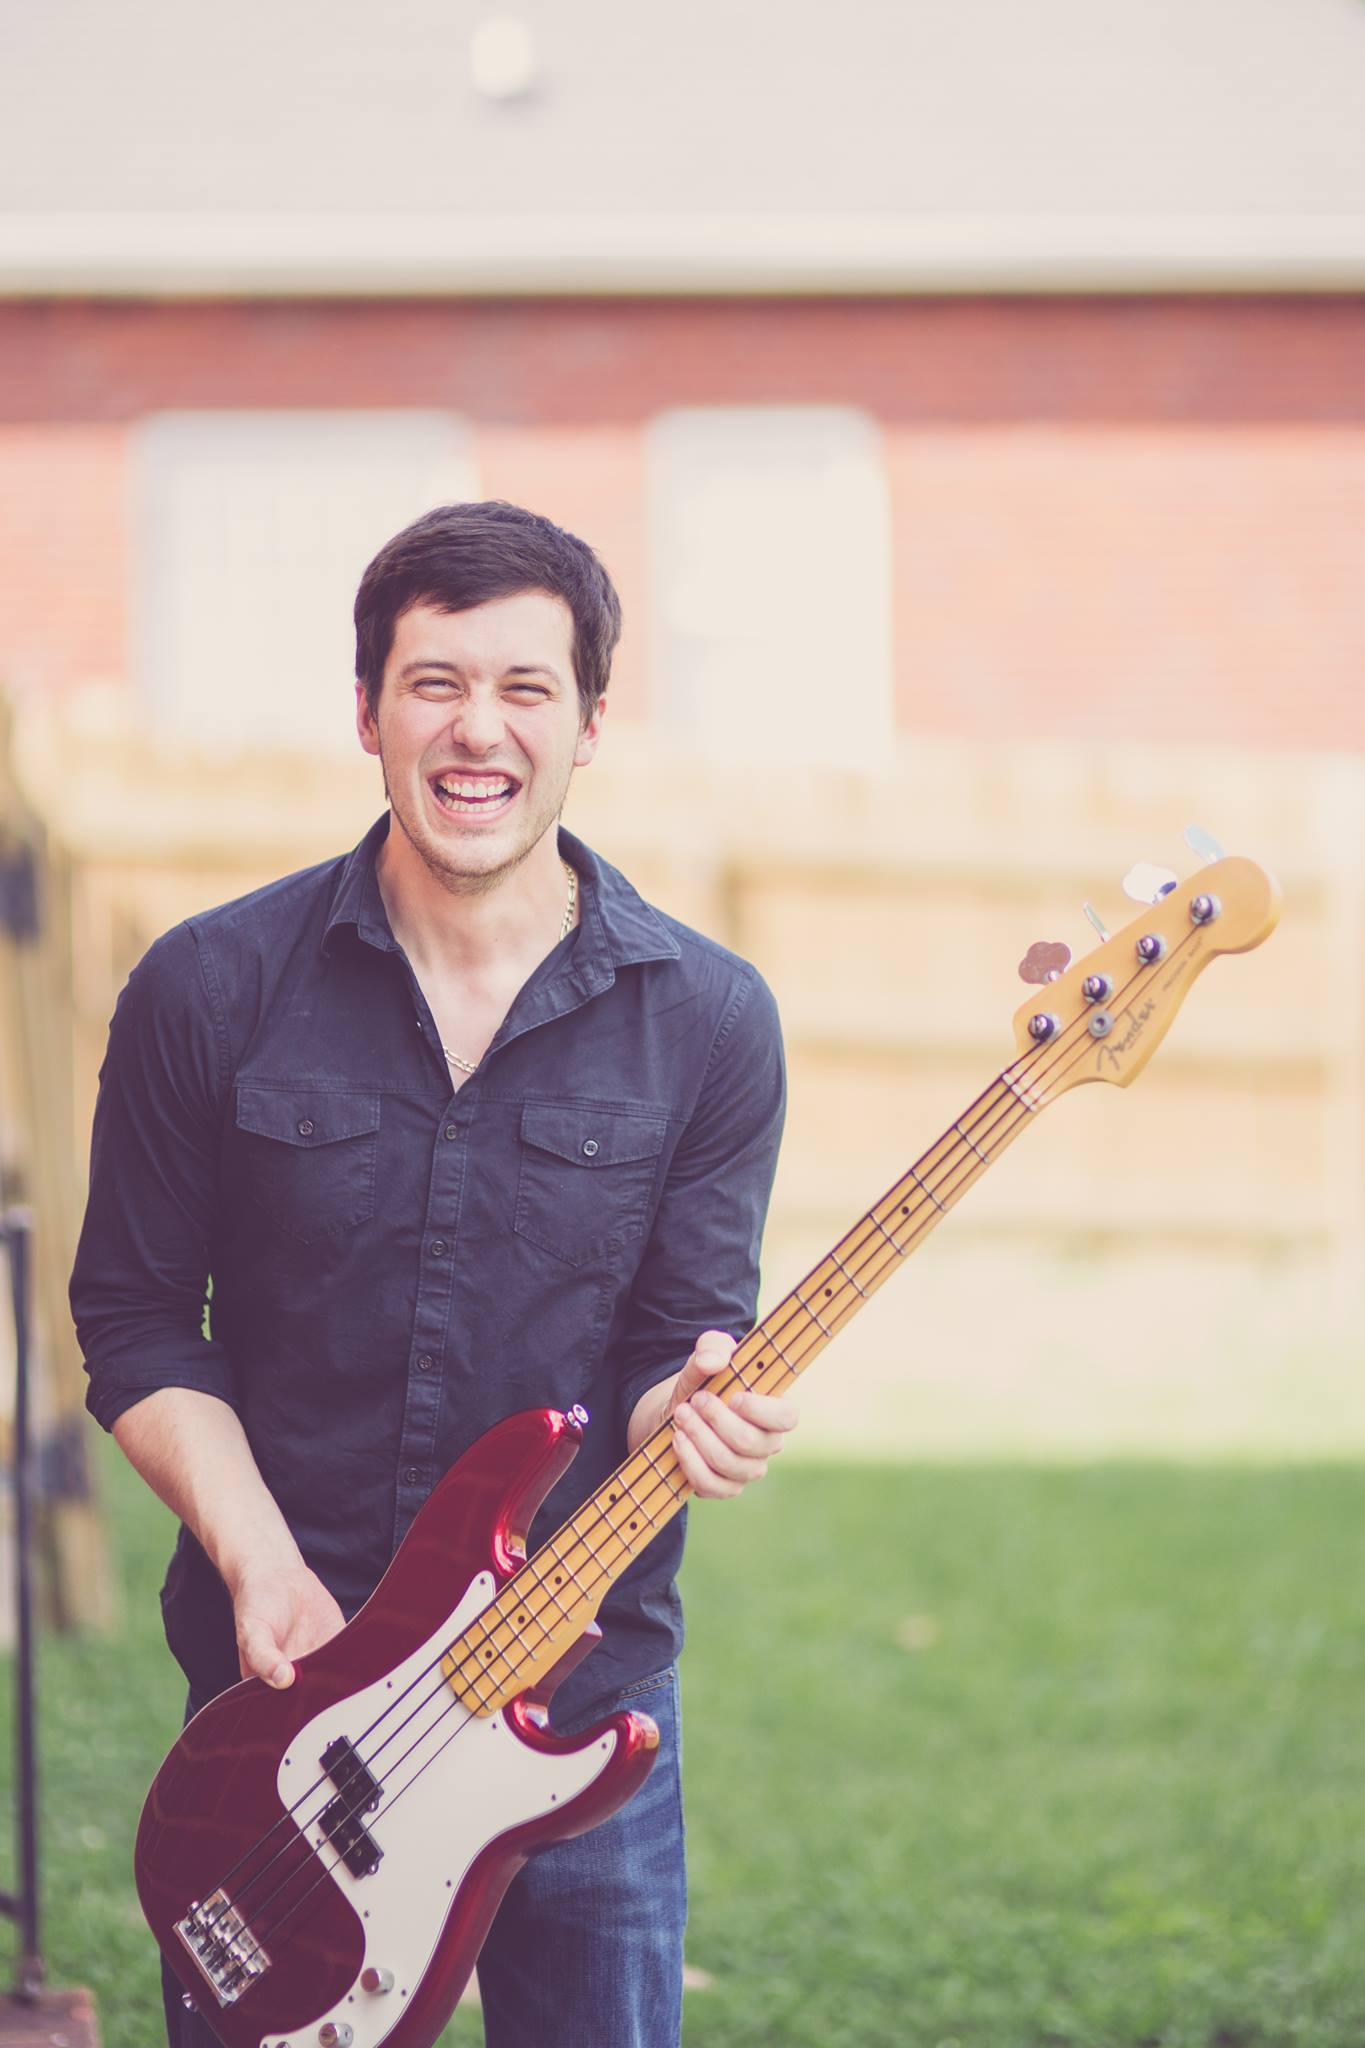 record a bass guitar track for your song